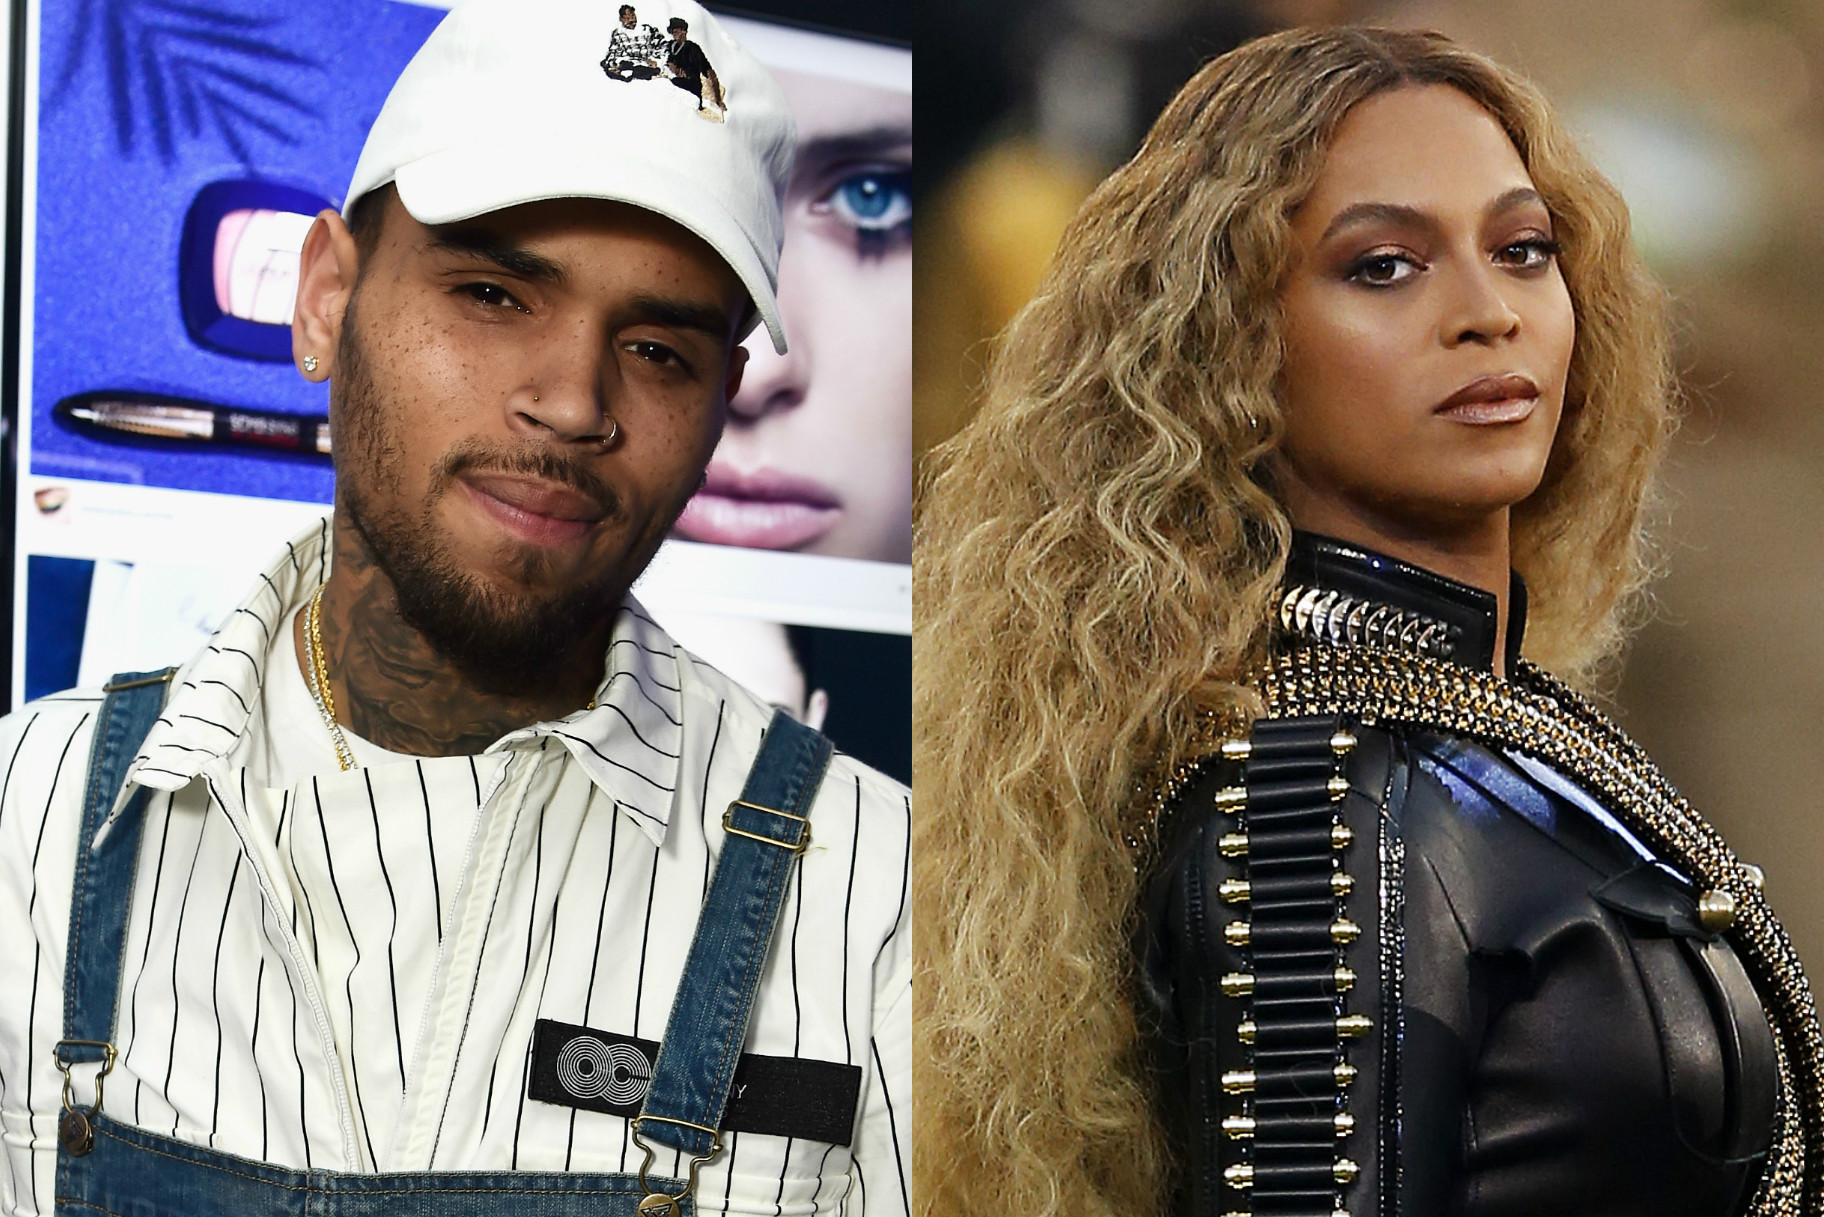 beyonce-and-chris-brown-fans-argue-over-whos-a-better-performer